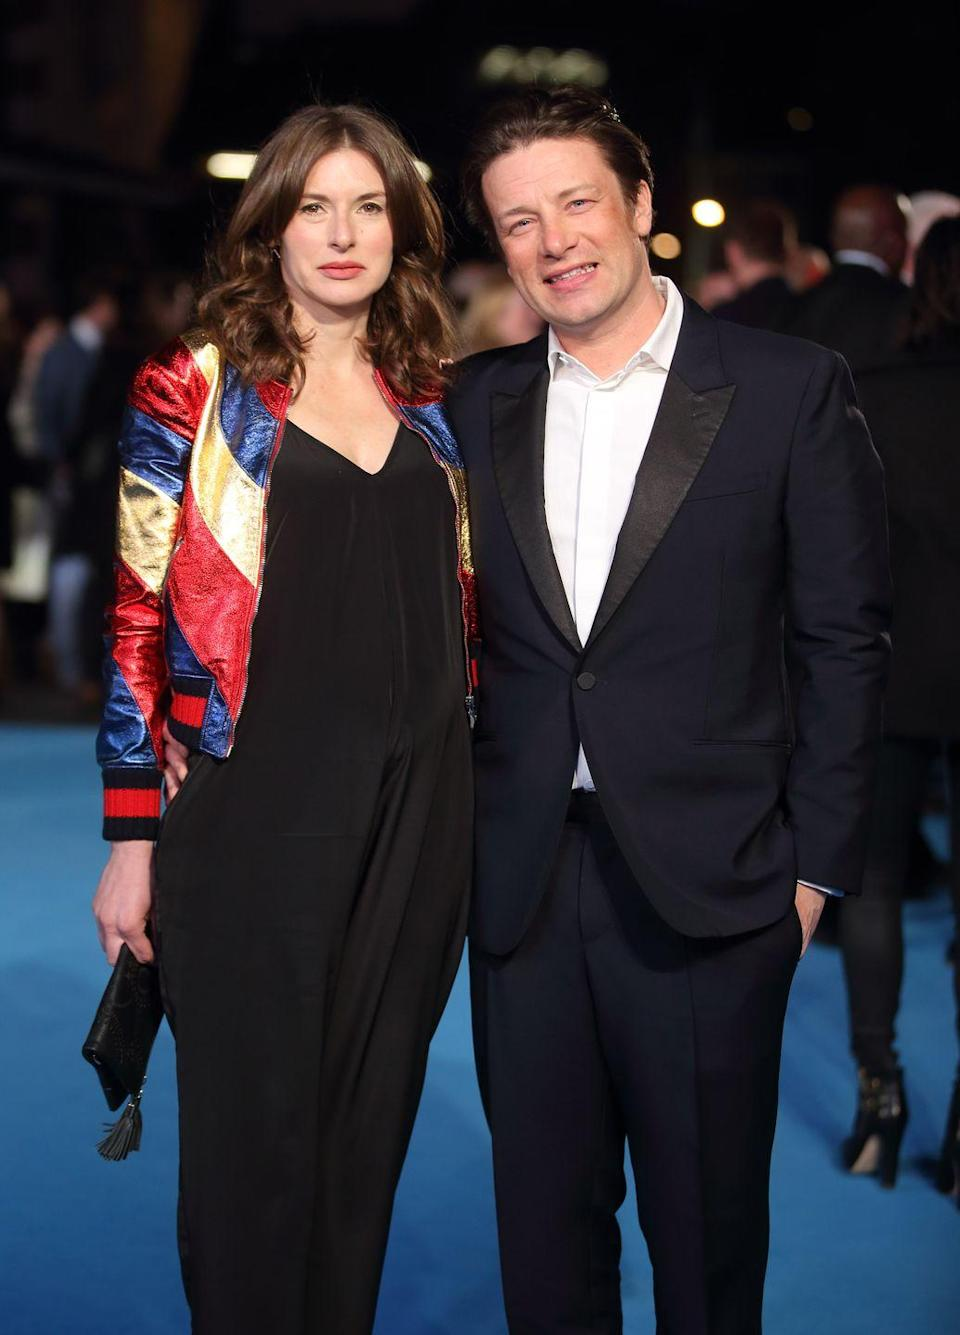 <p>Chef Jamie Oliver and wife Jools are no stranger to the unique names for kids club. In addition to Petal, they've dubbed their kiddos a wide range of interesting monikers: Poppy Honey Rosie, Daisy Boo Pamela, Buddy Bear and River Rocket Blue Dallas are also dining at the (surely amazing) Oliver family table.</p>